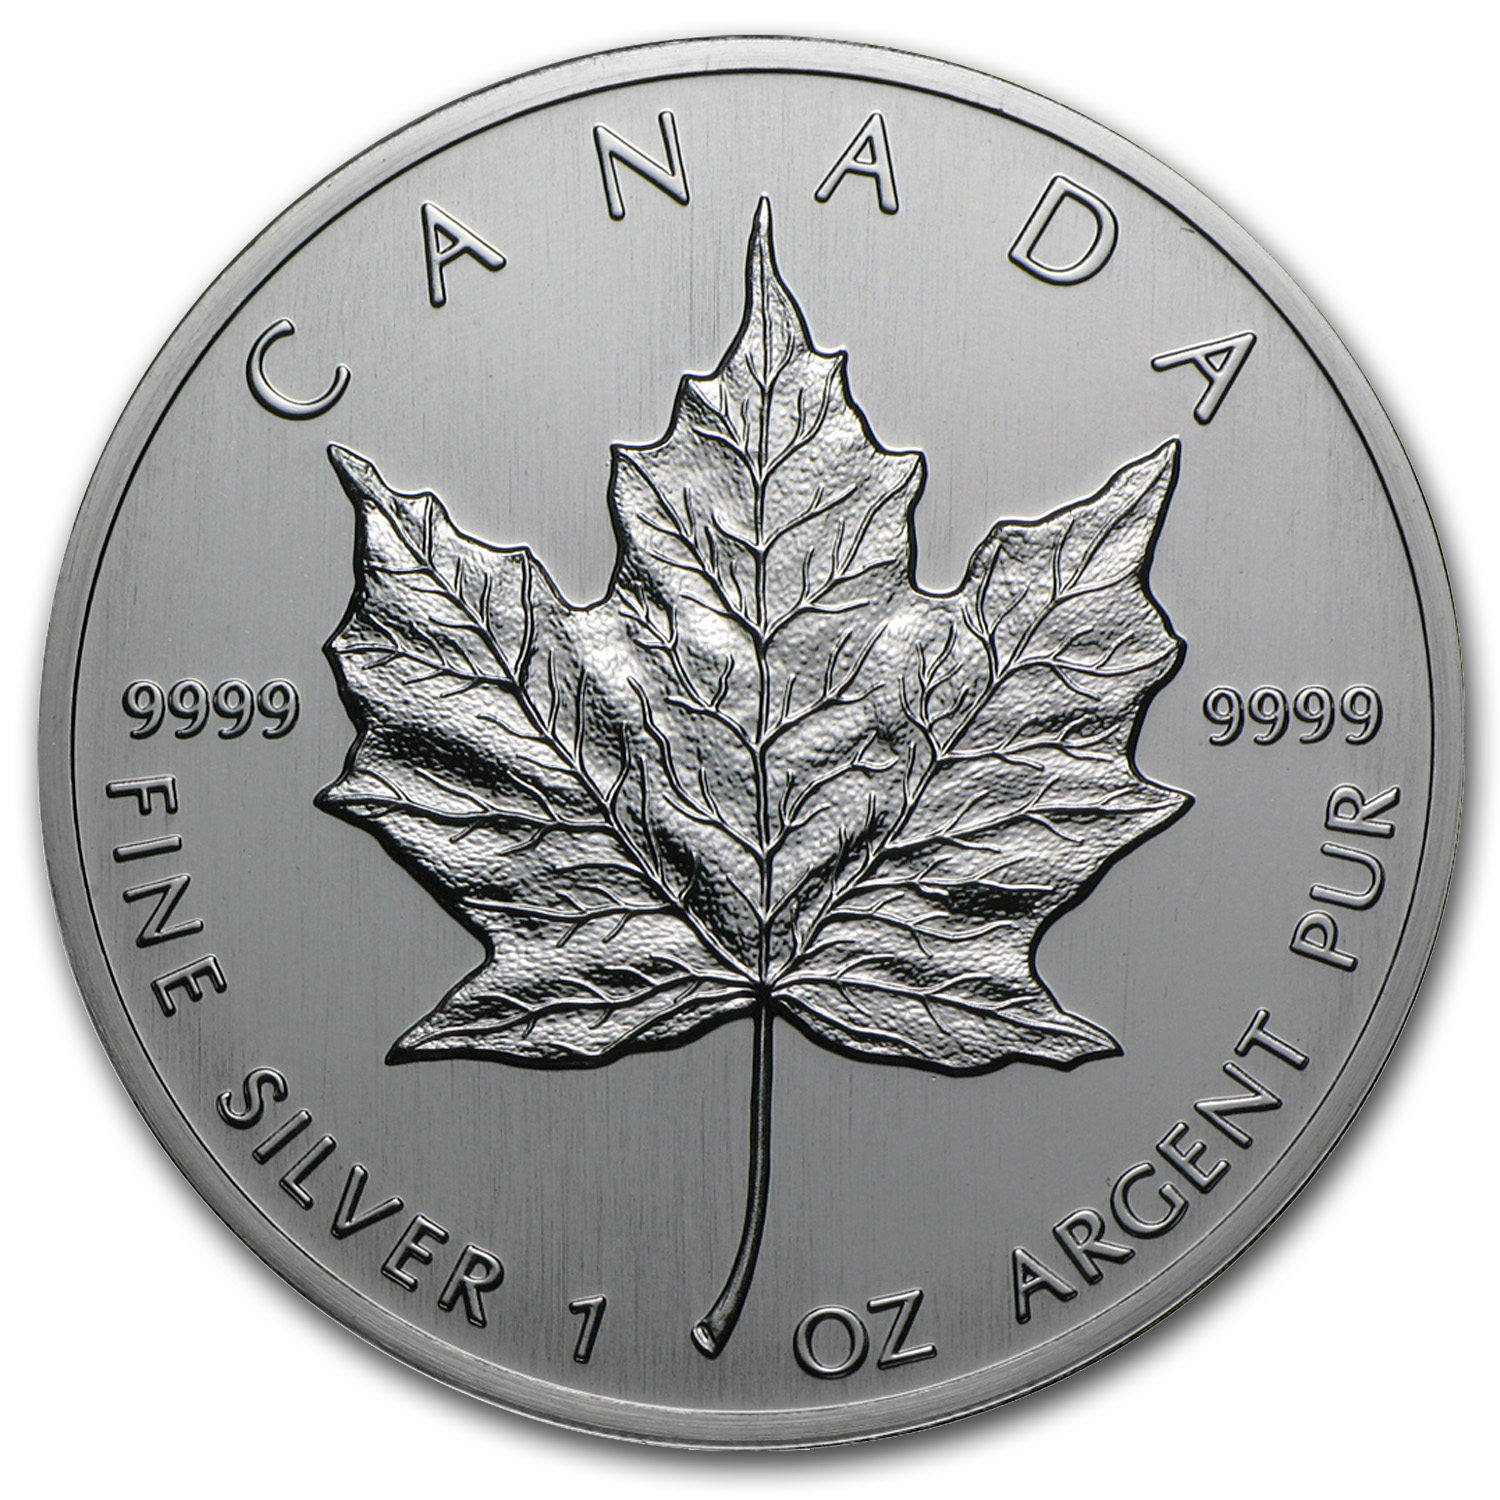 1988 Canada 1 oz Silver Maple Leaf BU